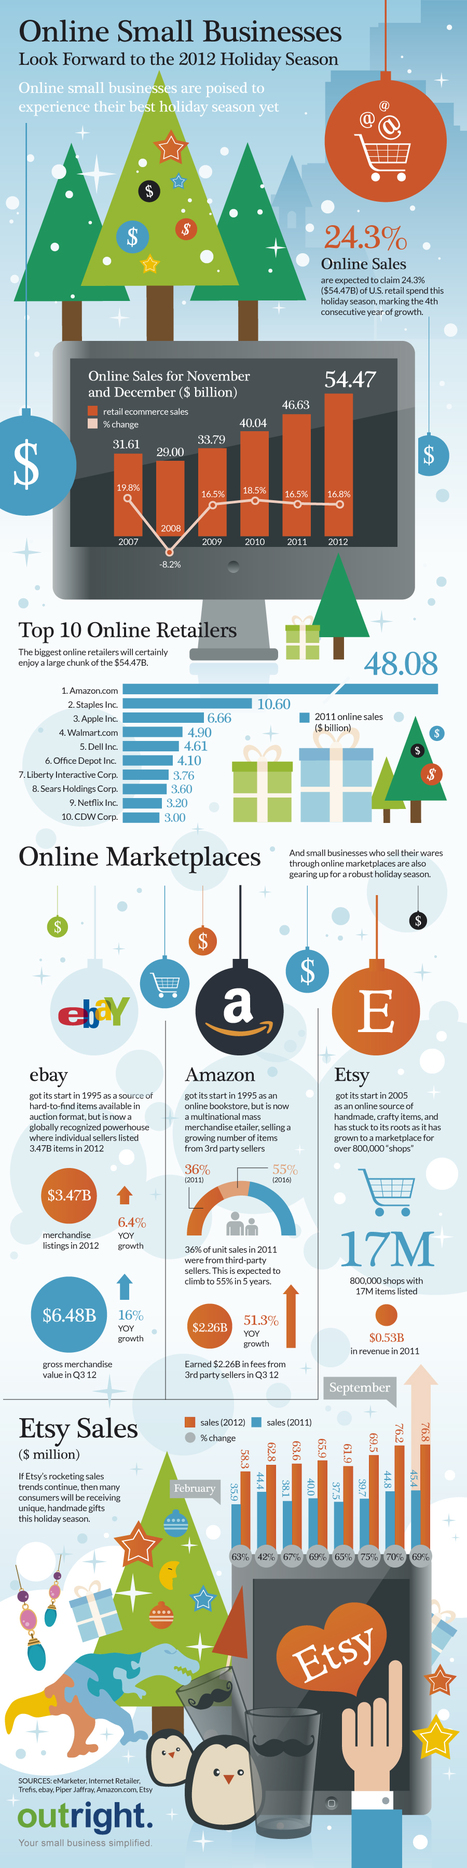 Online Small Business Holiday Sales in 2012 [Infographic]   MarketingHits   Scoop.it